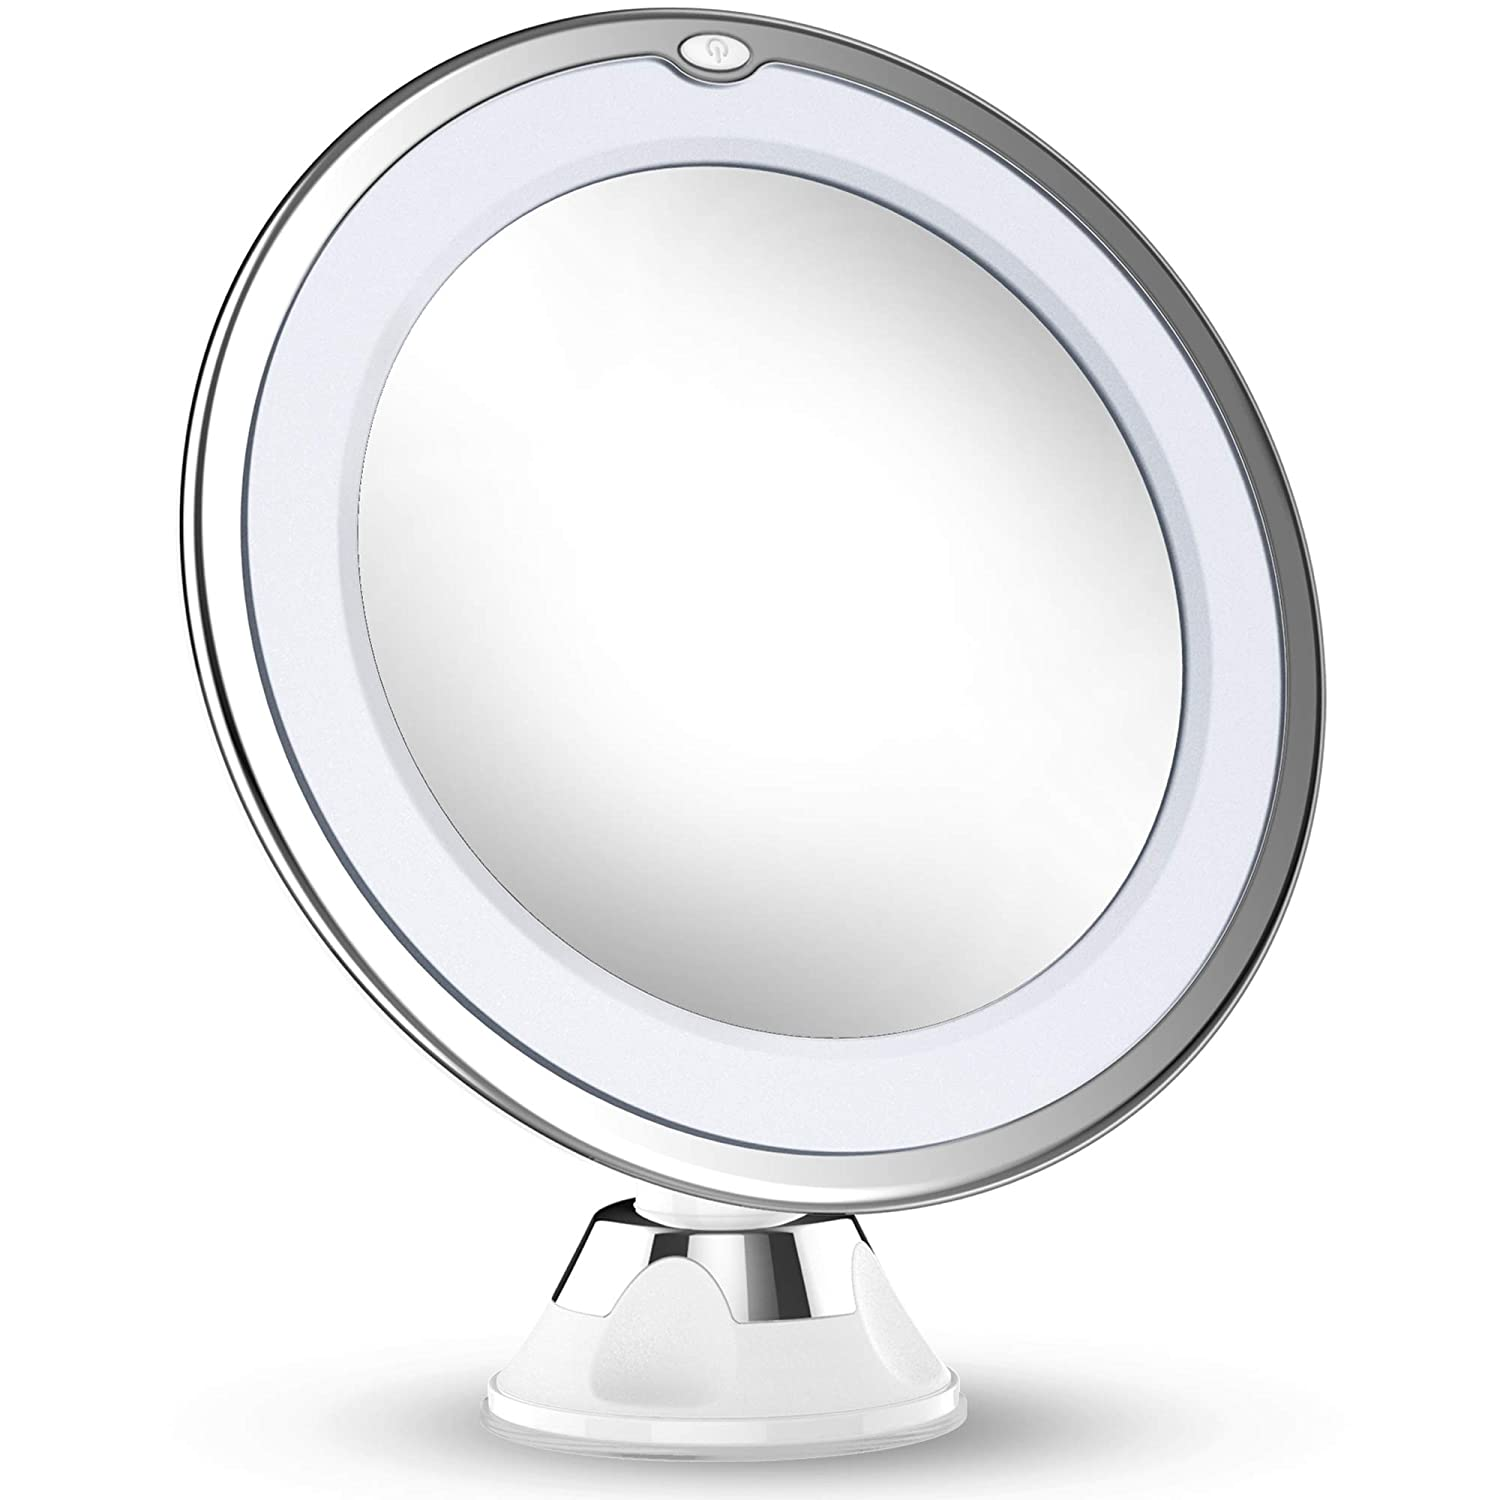 Updated 2020 Version 10X Magnifying Makeup Vanity Mirror with Lights, LED Lighted Portable Hand Cosmetic Magnification Light up Mirrors for Home Tabletop Bathroom Shower Travel: Beauty